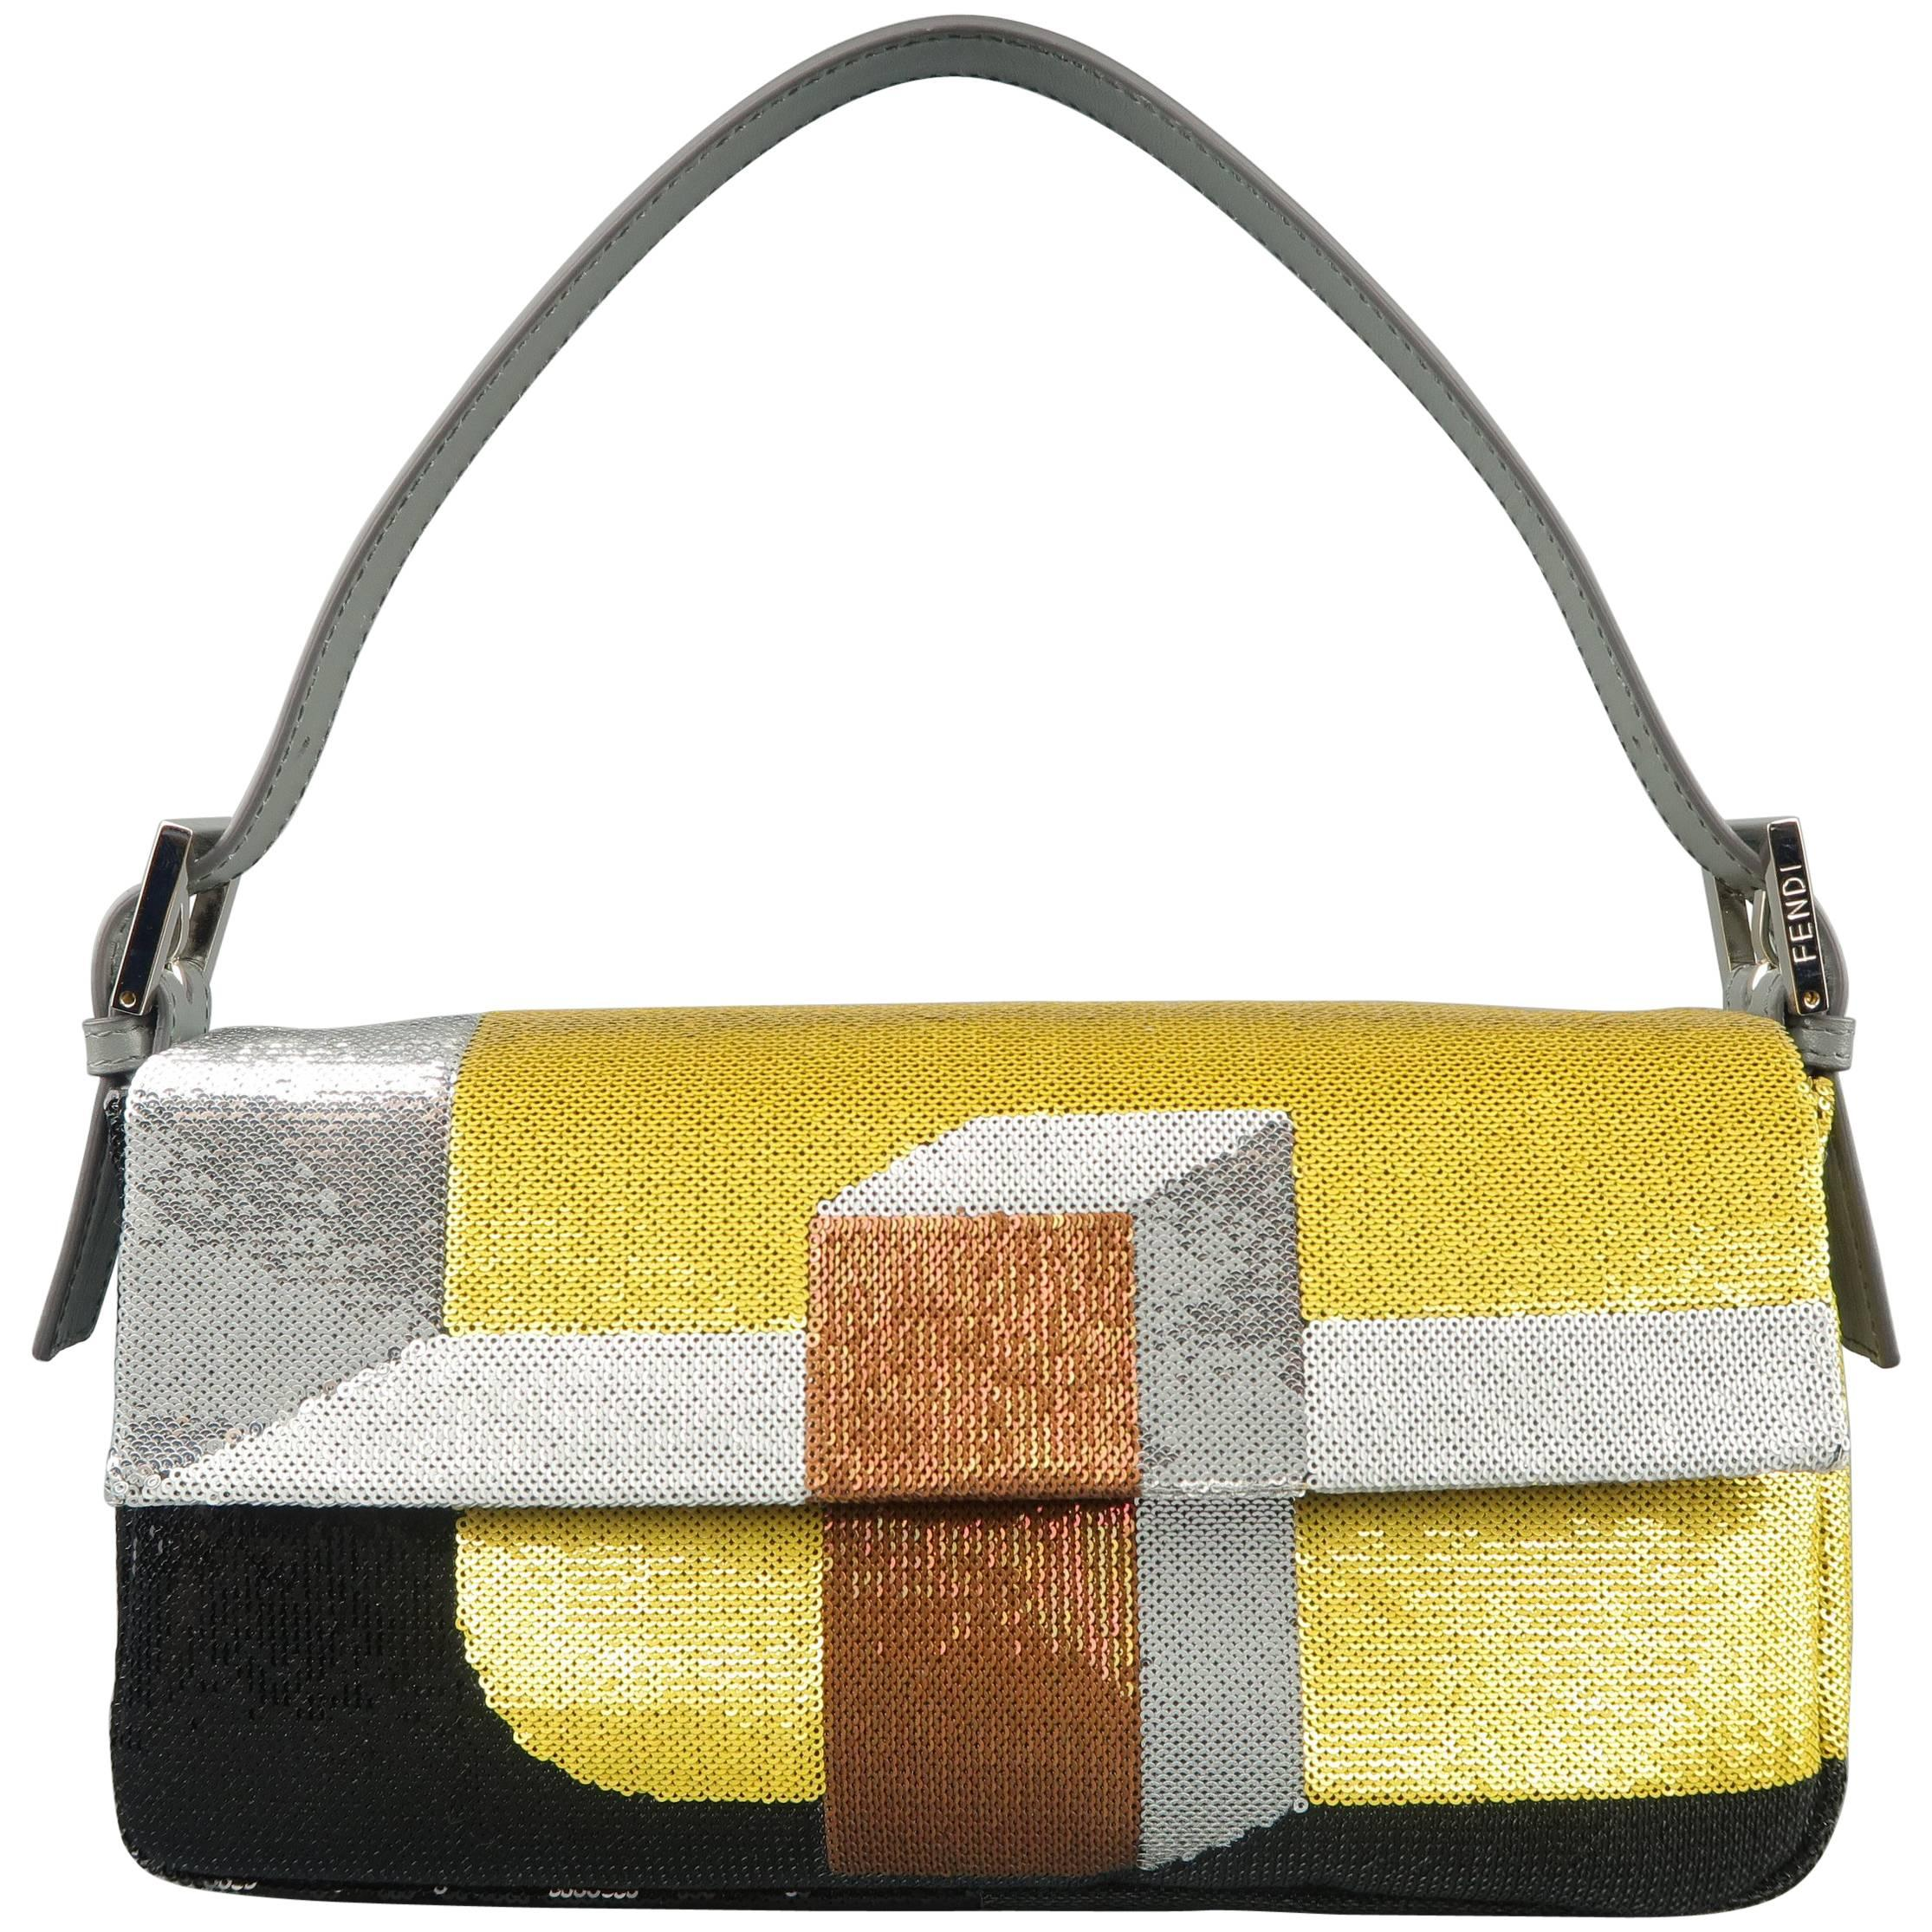 6964ec5d26 Fendi Gold Silver and Bronze Color Block Sequined Baguette Handbag at  1stdibs